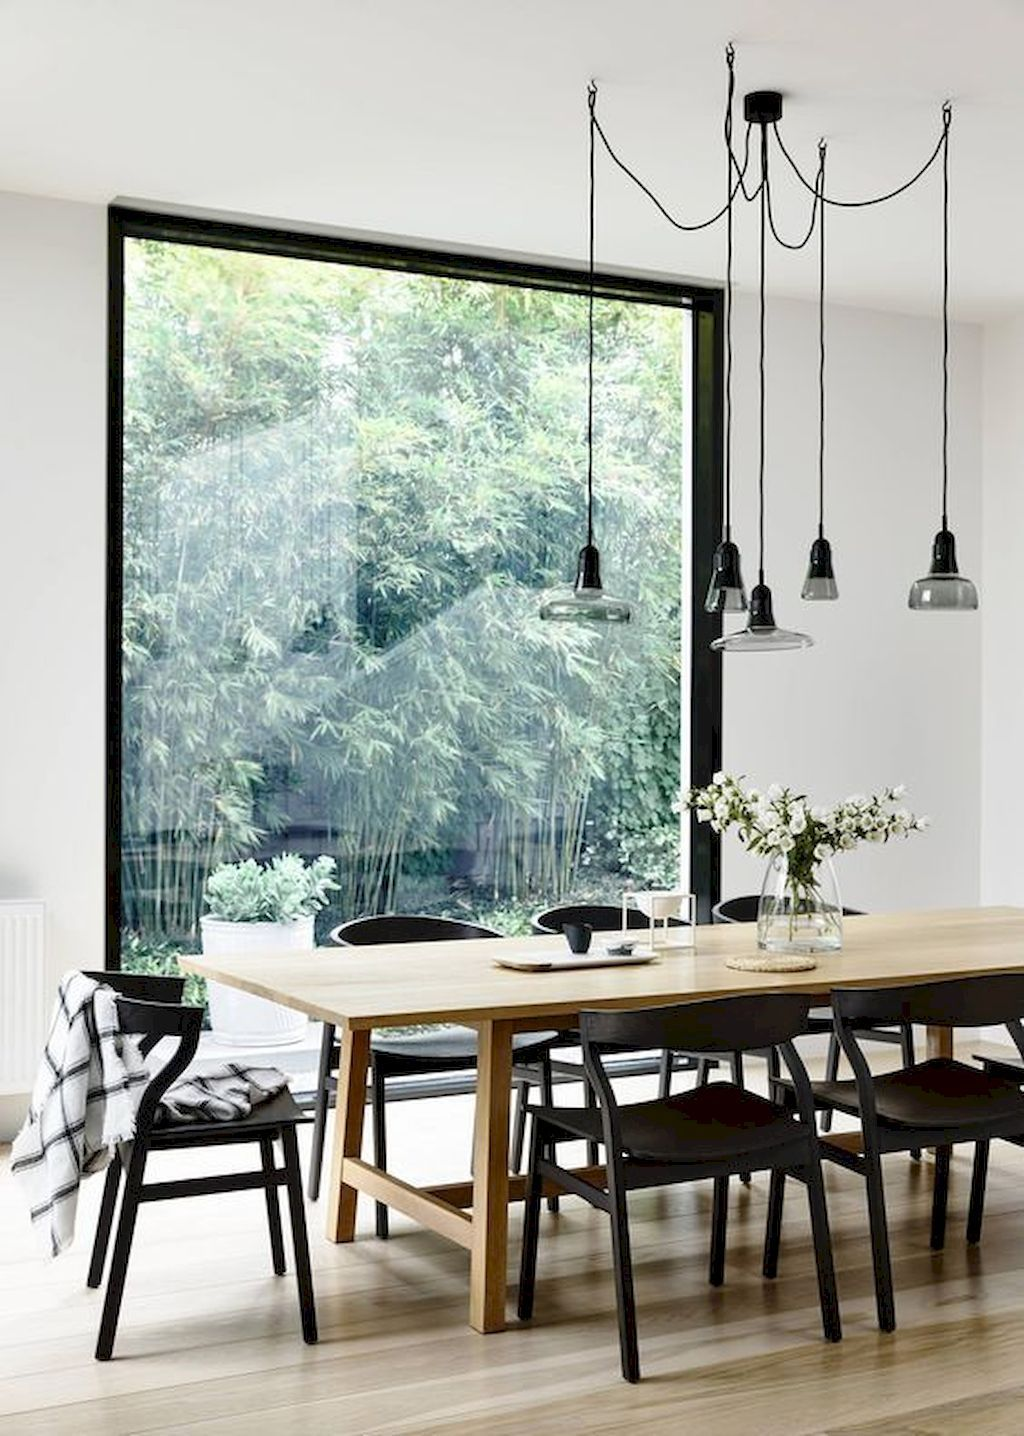 Scandinavian Interior Design Will Always Awesome (53